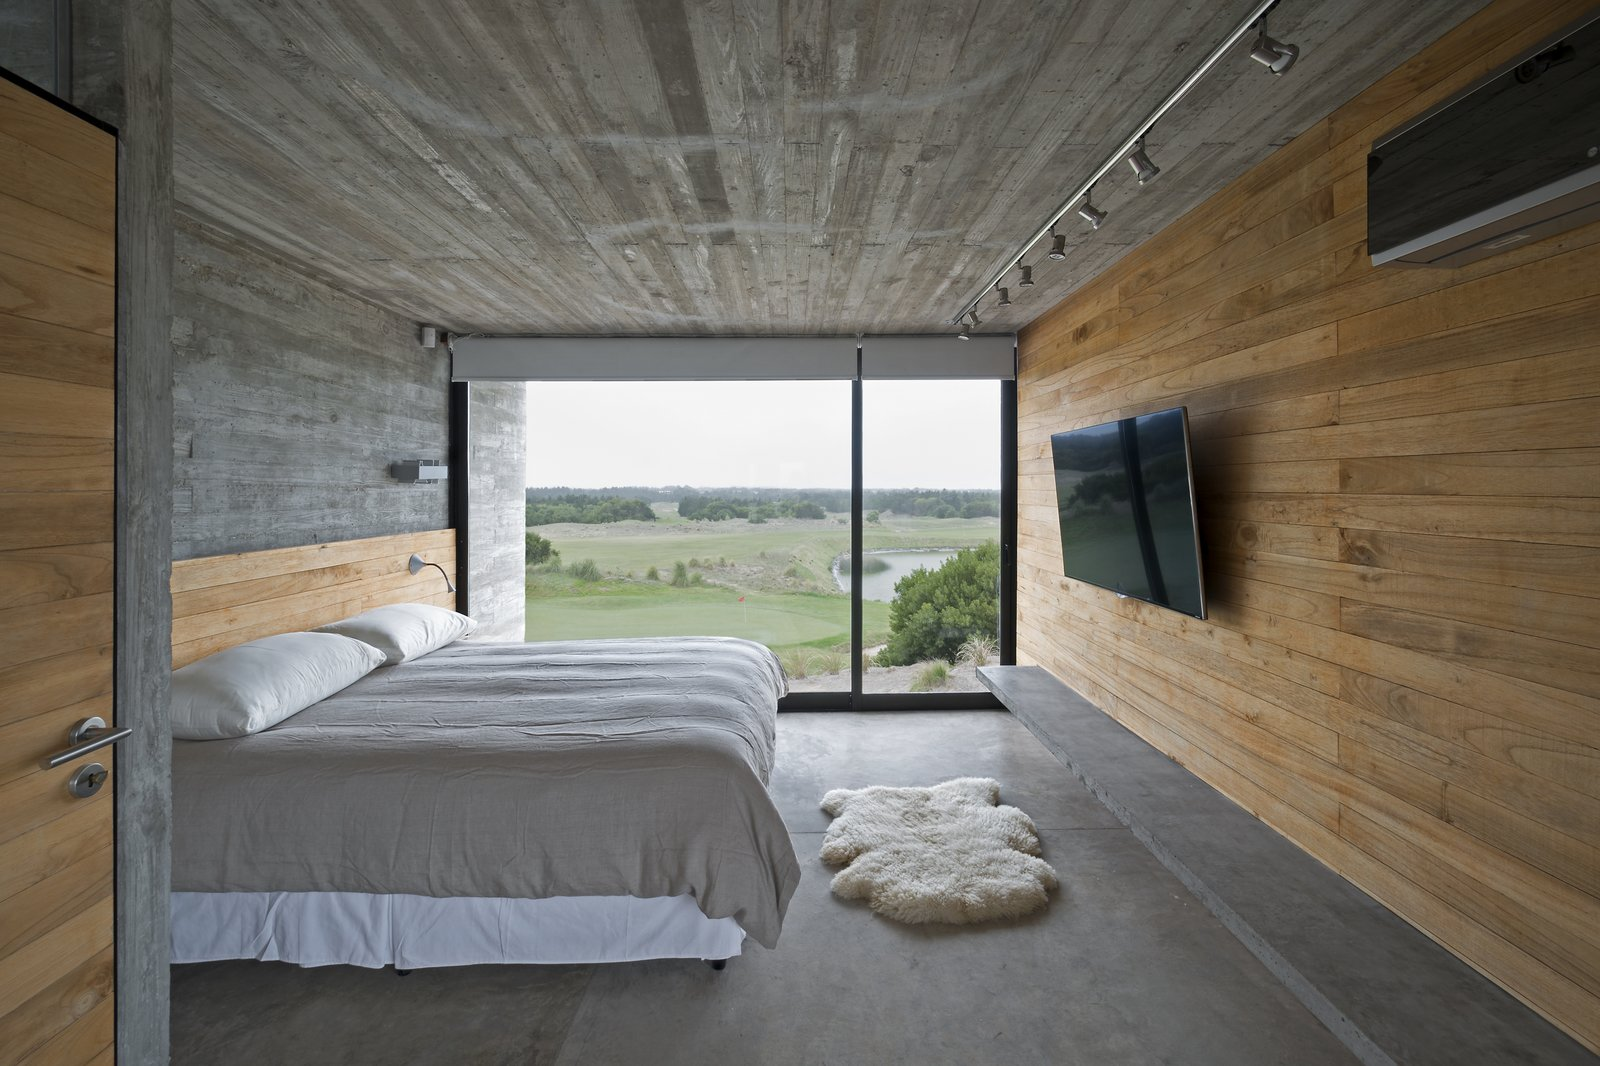 Bedroom, Track Lighting, Bed, Concrete Floor, Wall Lighting, and Bench Kiri wood walls help keep the bedroom cool.  Best Photos from This Stacked Concrete Home Is Not Your Typical Golf Course Dwelling